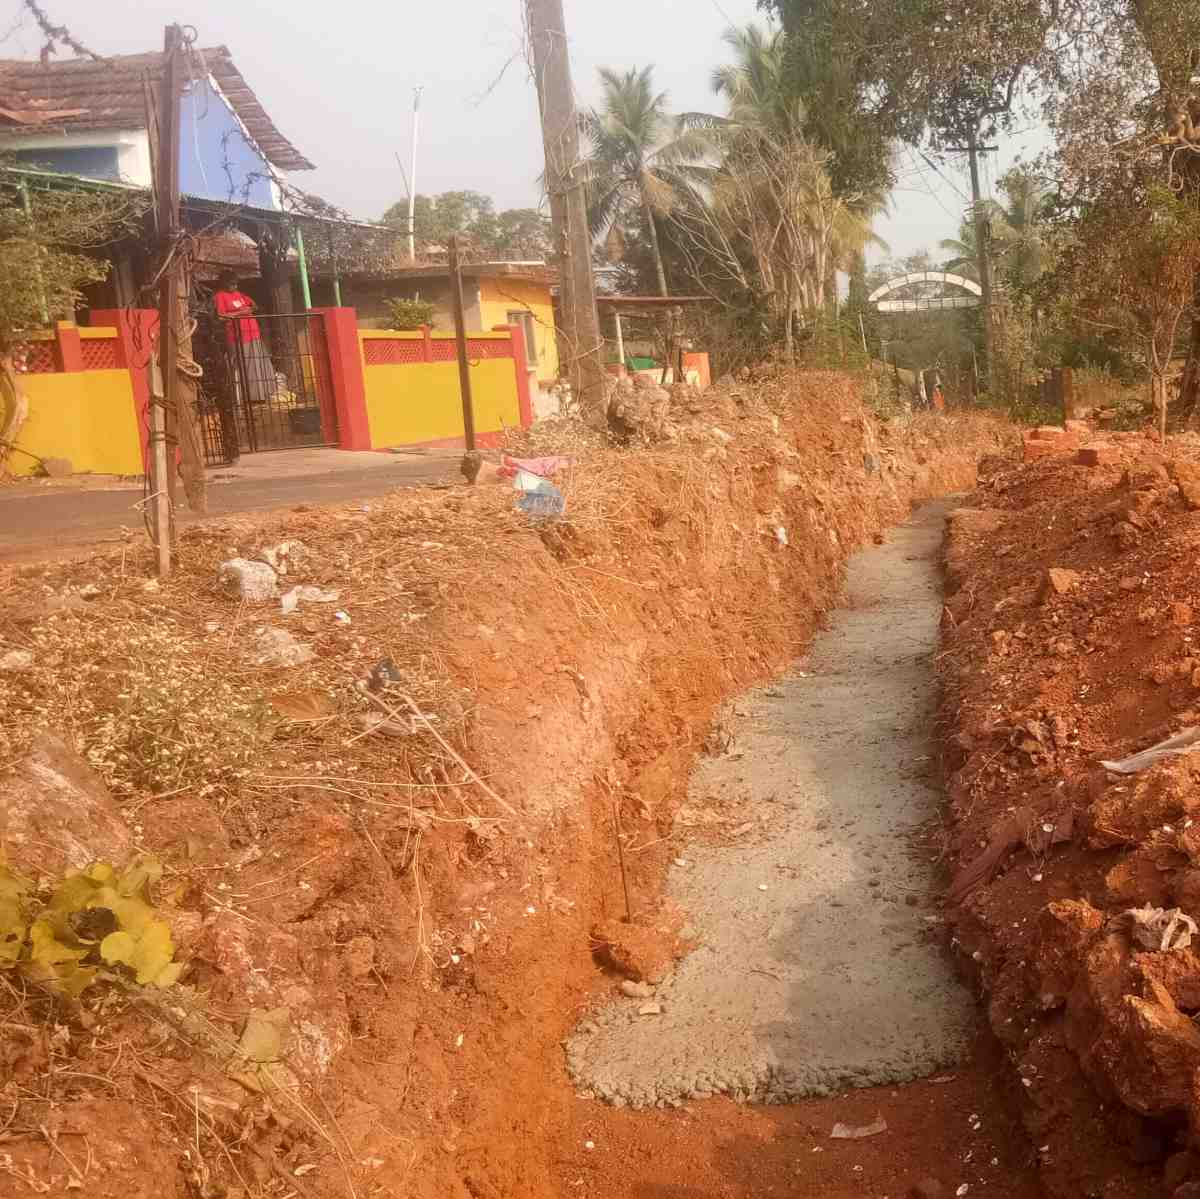 Building a new perimeter wall at the MSFS seminary, January 2018